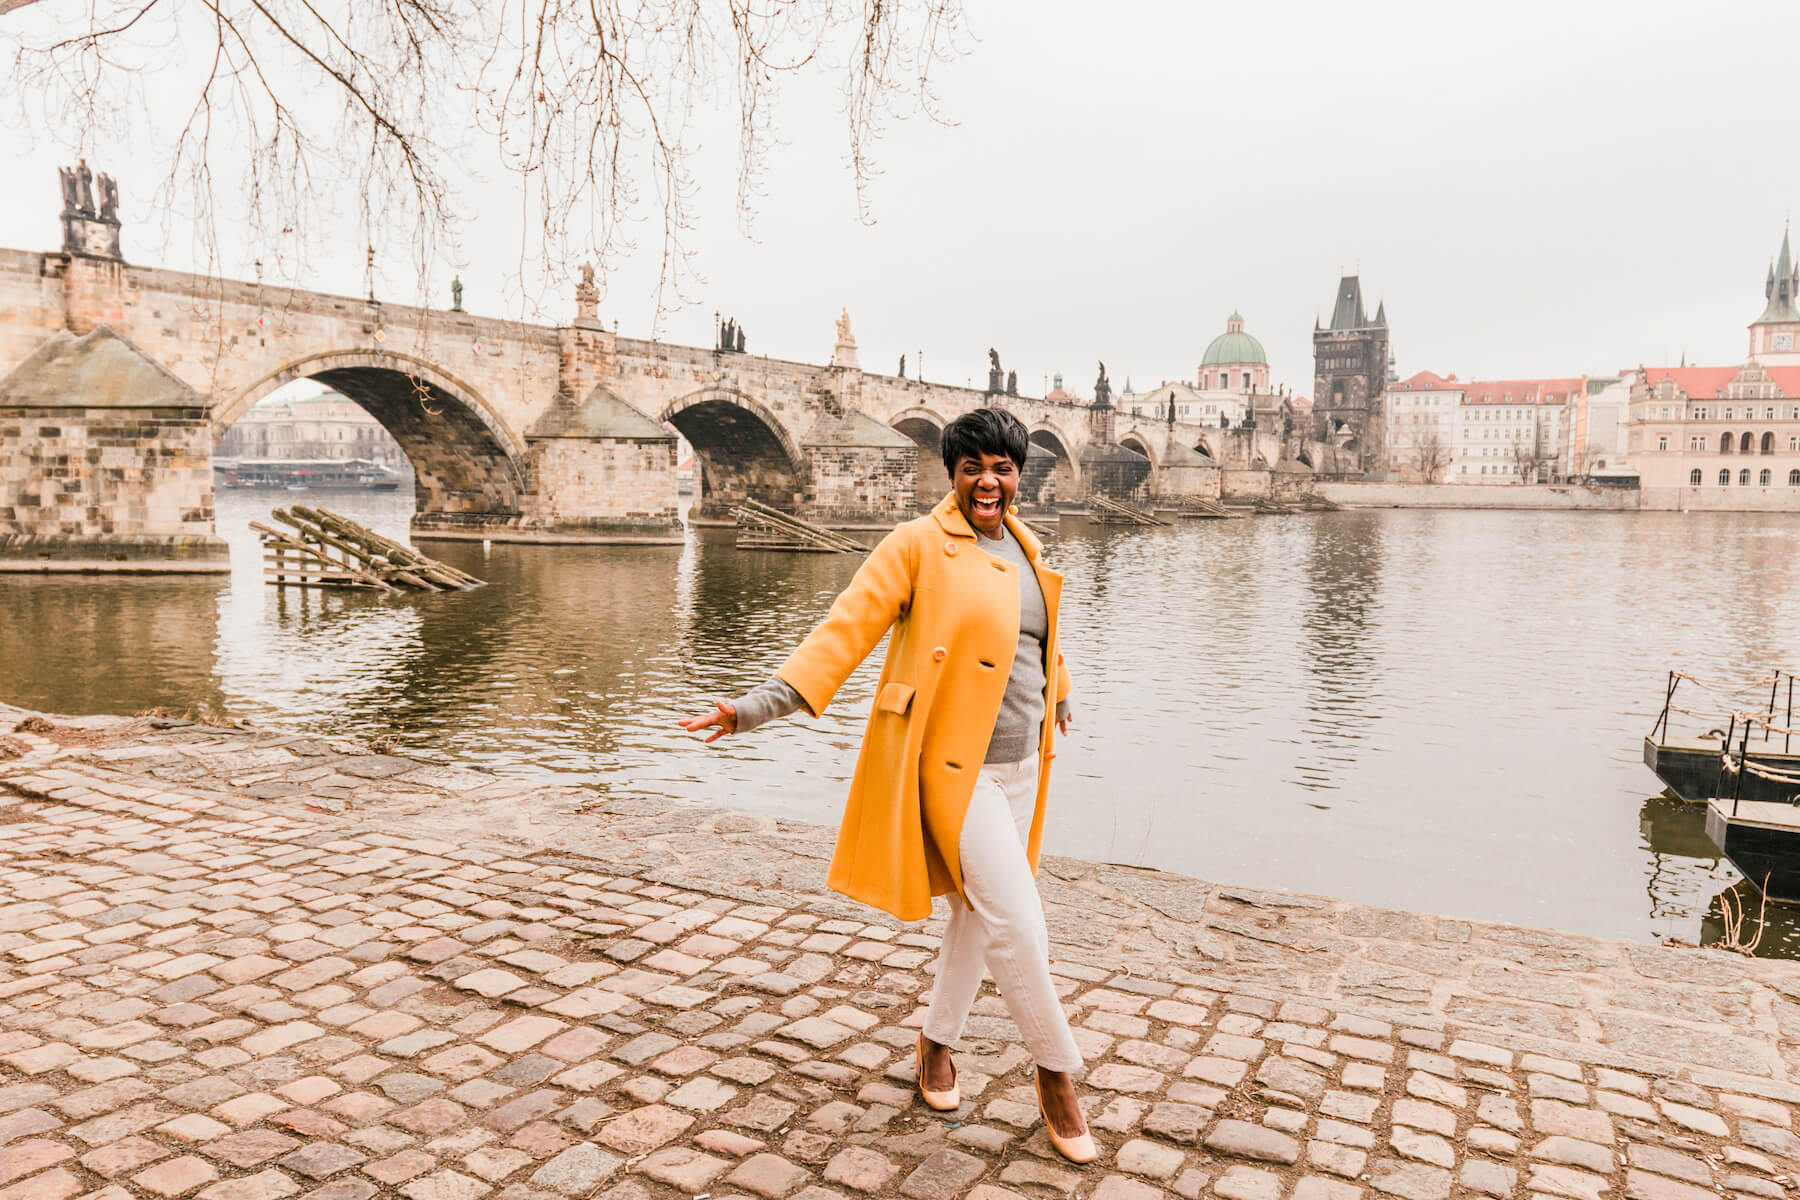 Solo traveller in Prague learning photo shoot tips with Flytographer